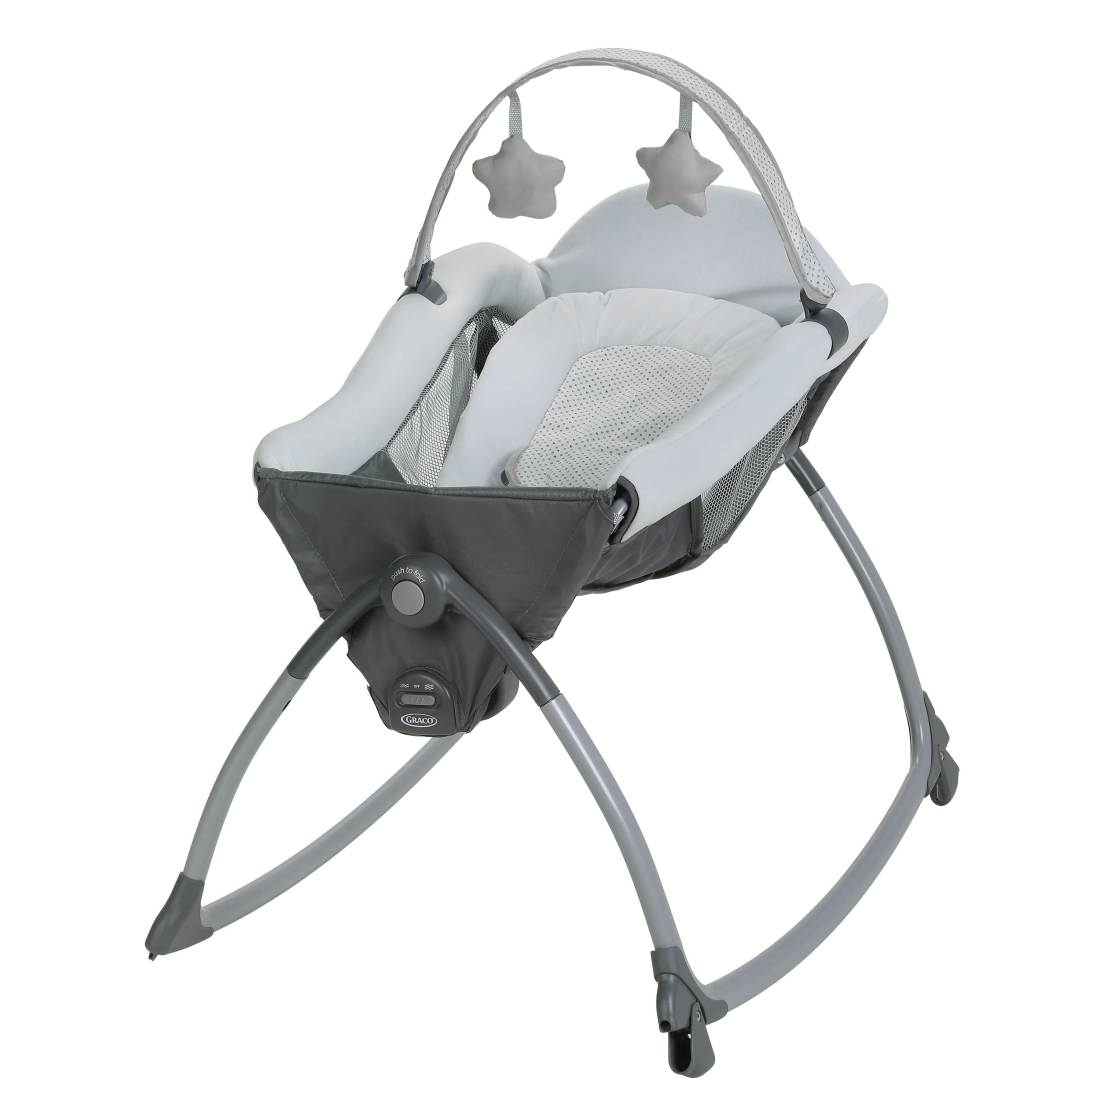 Graco Little Lounger Rocking Seat Recall Lawsuit Lawyer